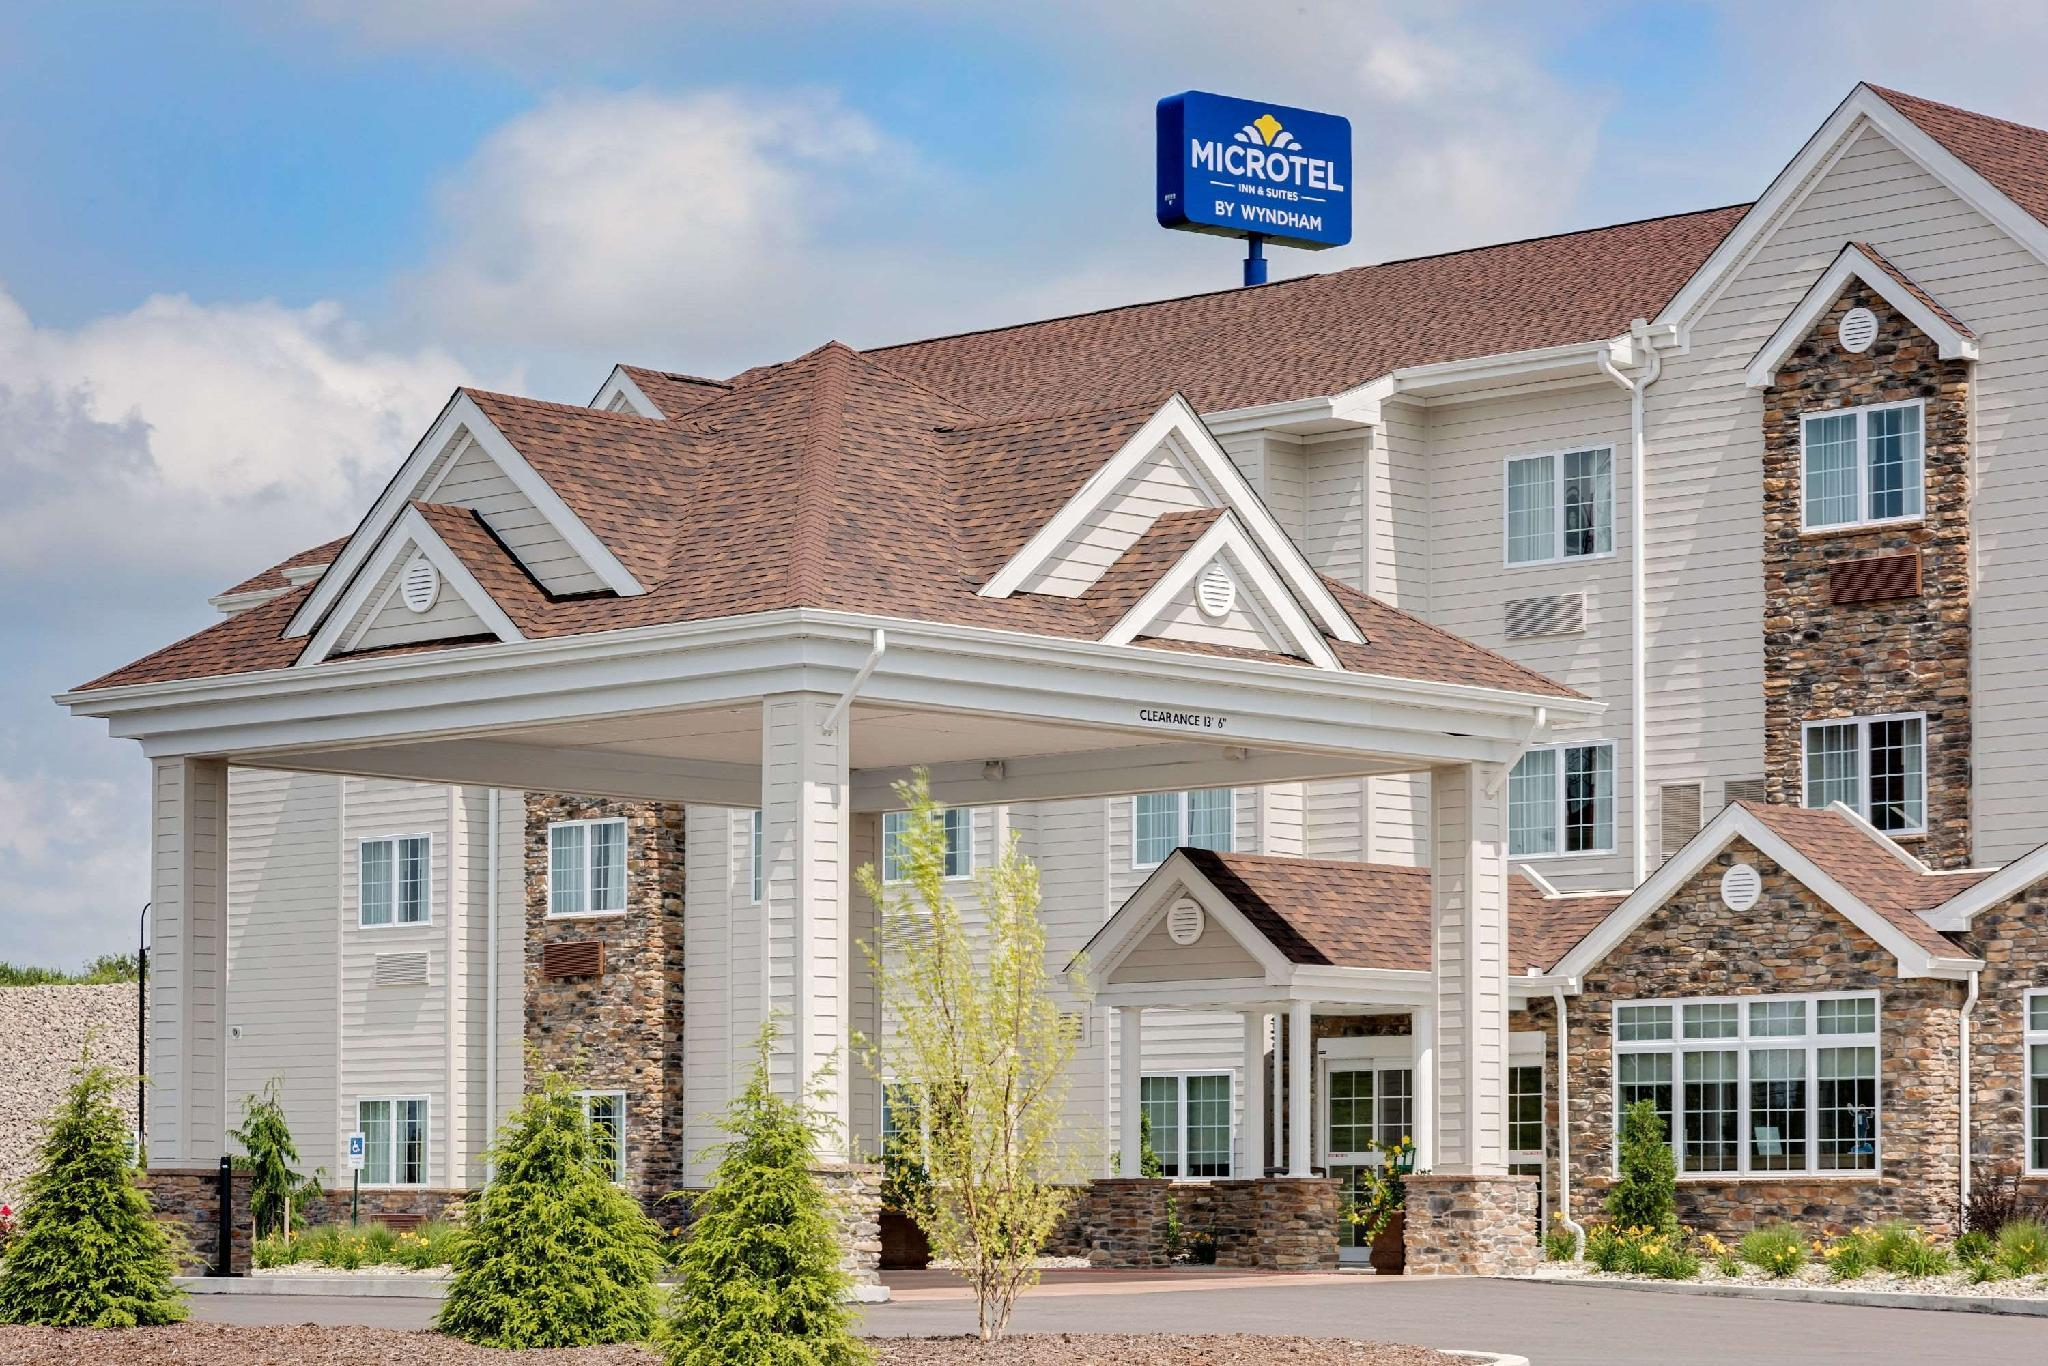 Microtel Inn And Suites By Wyndham Clarion